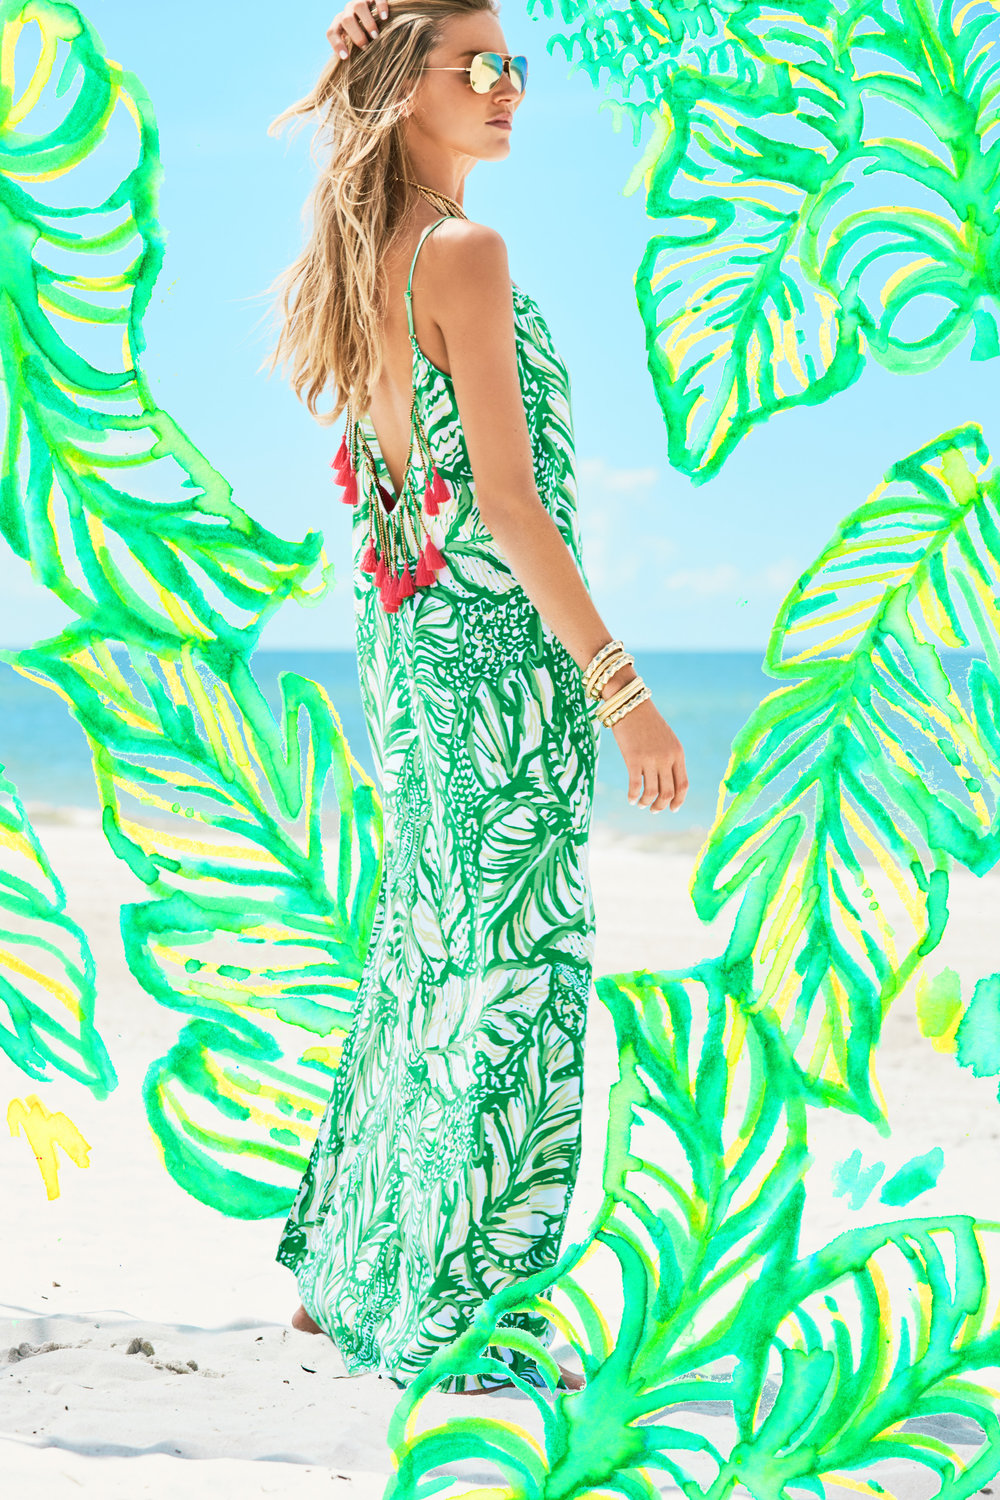 The Lilly Pulitzer Spring 2017 collection is in store at LadyBird now!